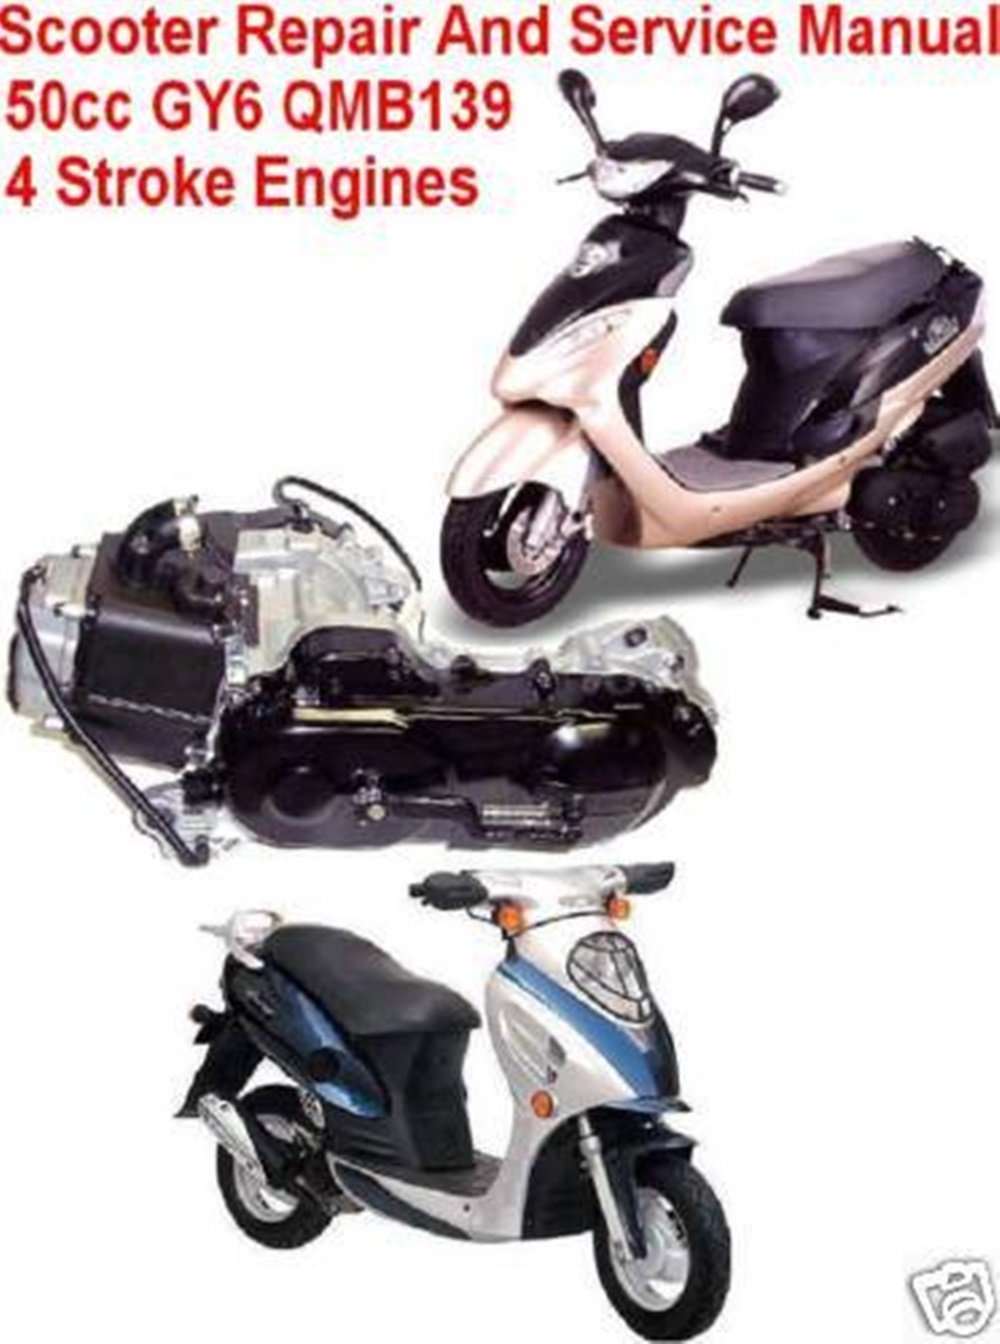 Chinese Gy6 Scooter Repair Manual 2019 Ebook Library Taotao 250 Wiring Diagram